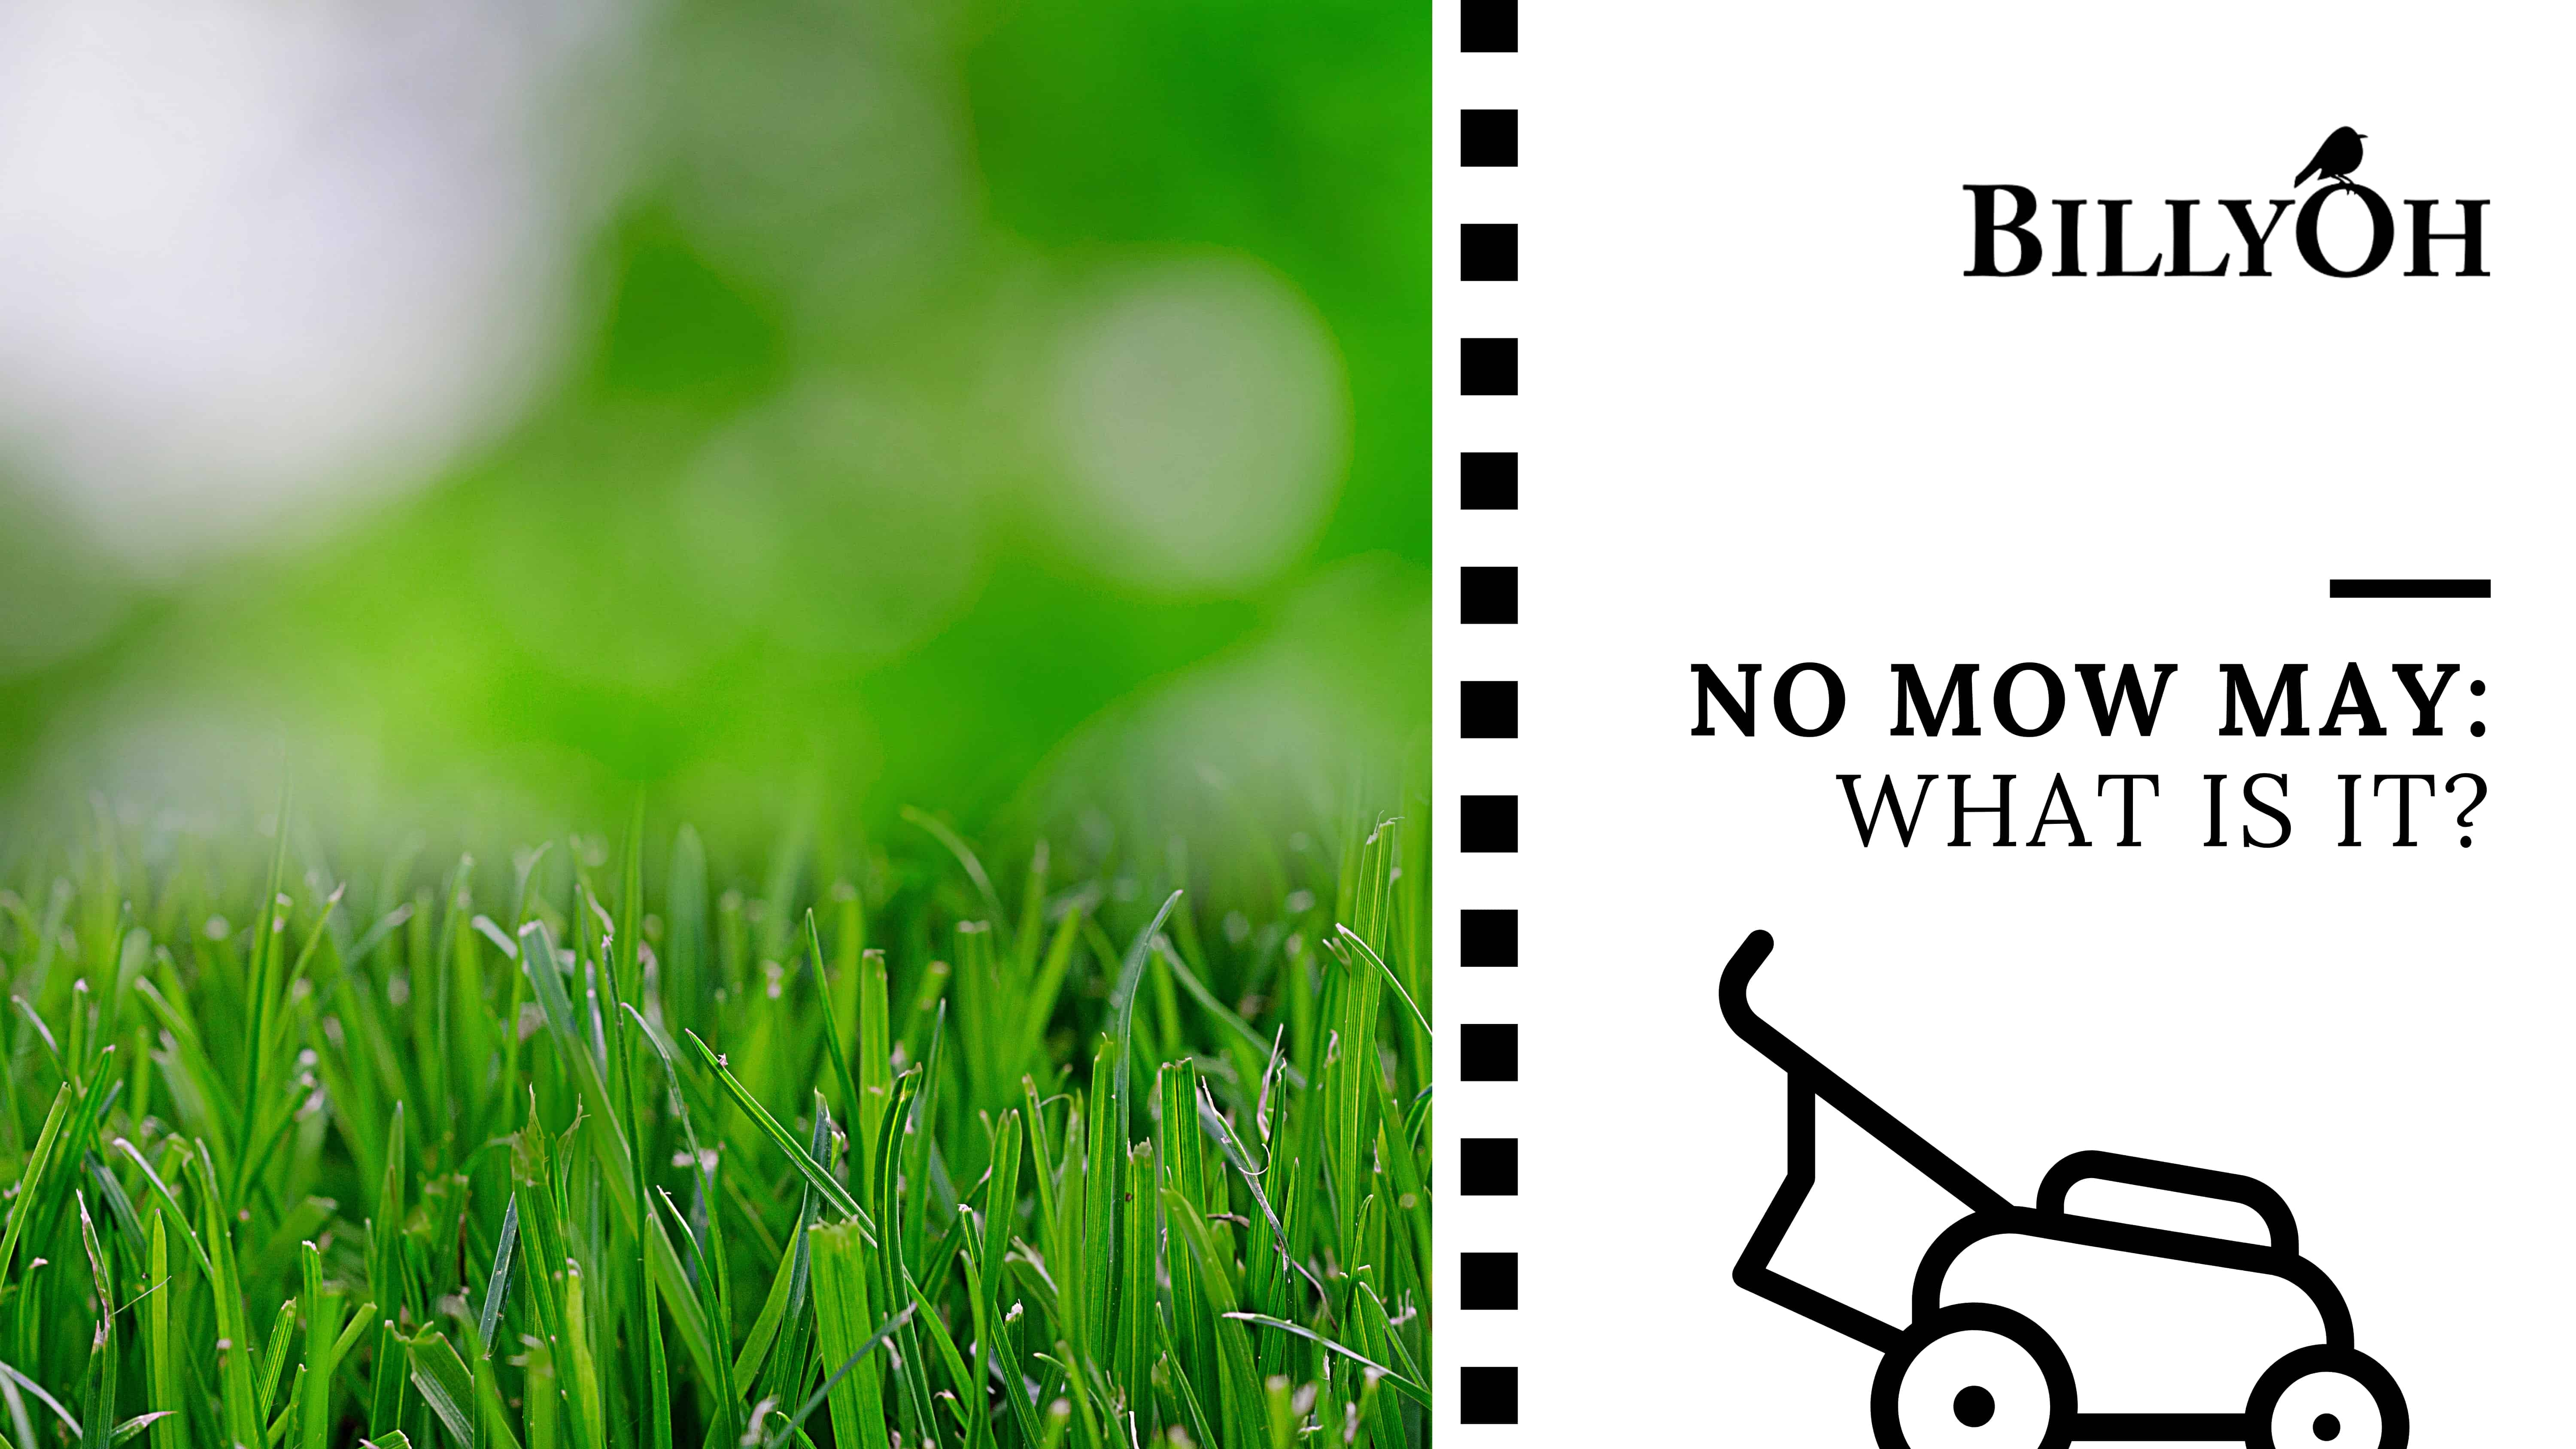 No Mow May with cartoon lawnmower on black and white film strip banner with lawn grass next to it